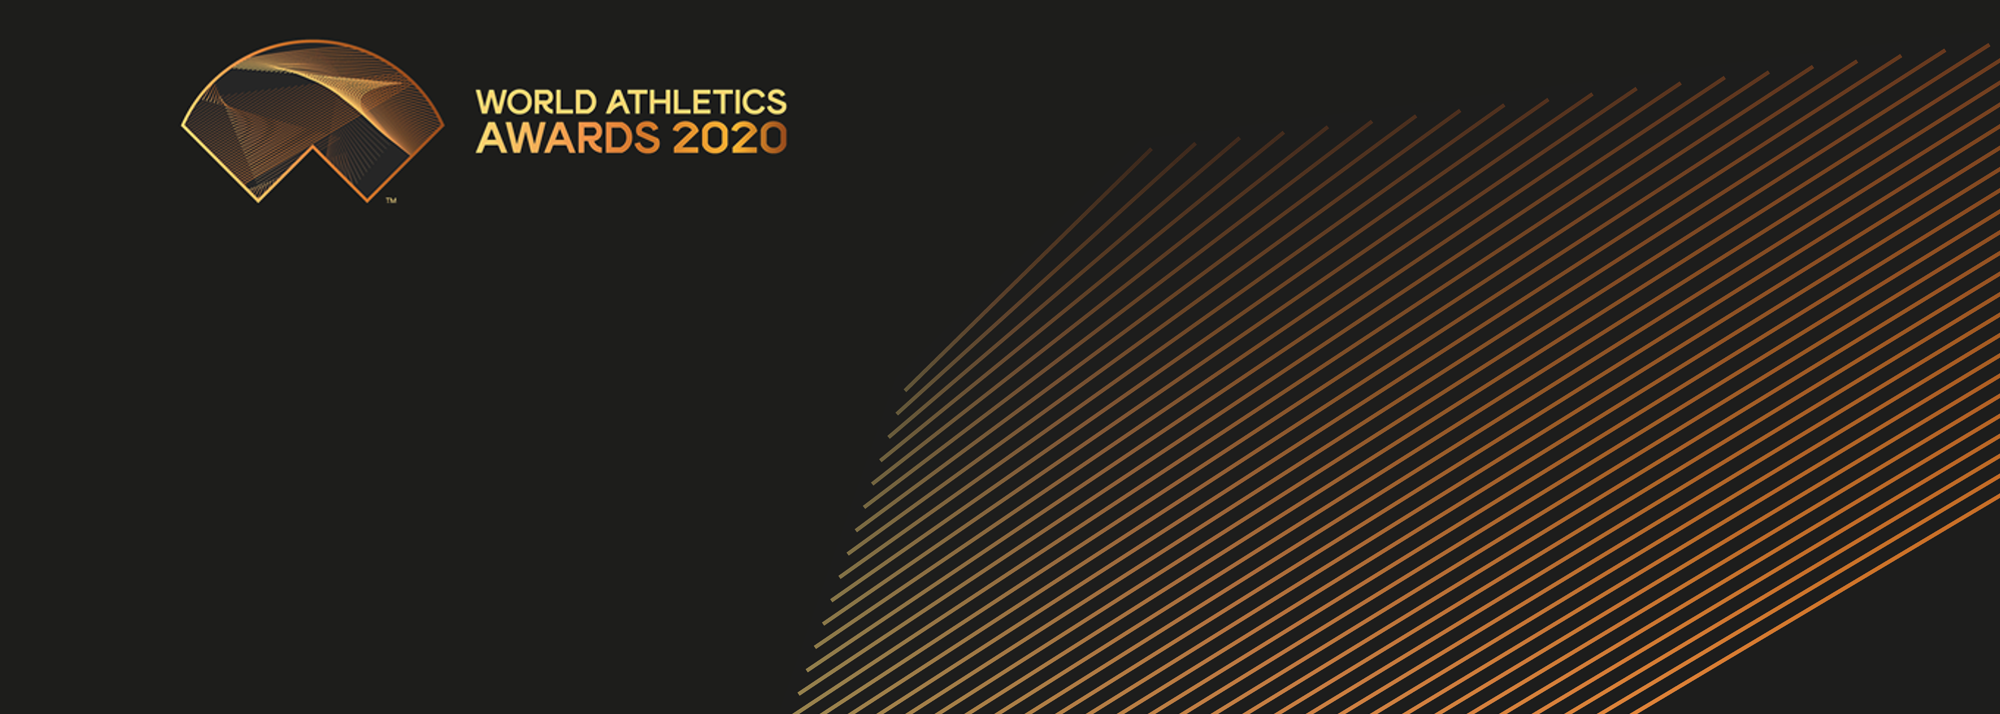 Guide to the World Athletics Awards 2020